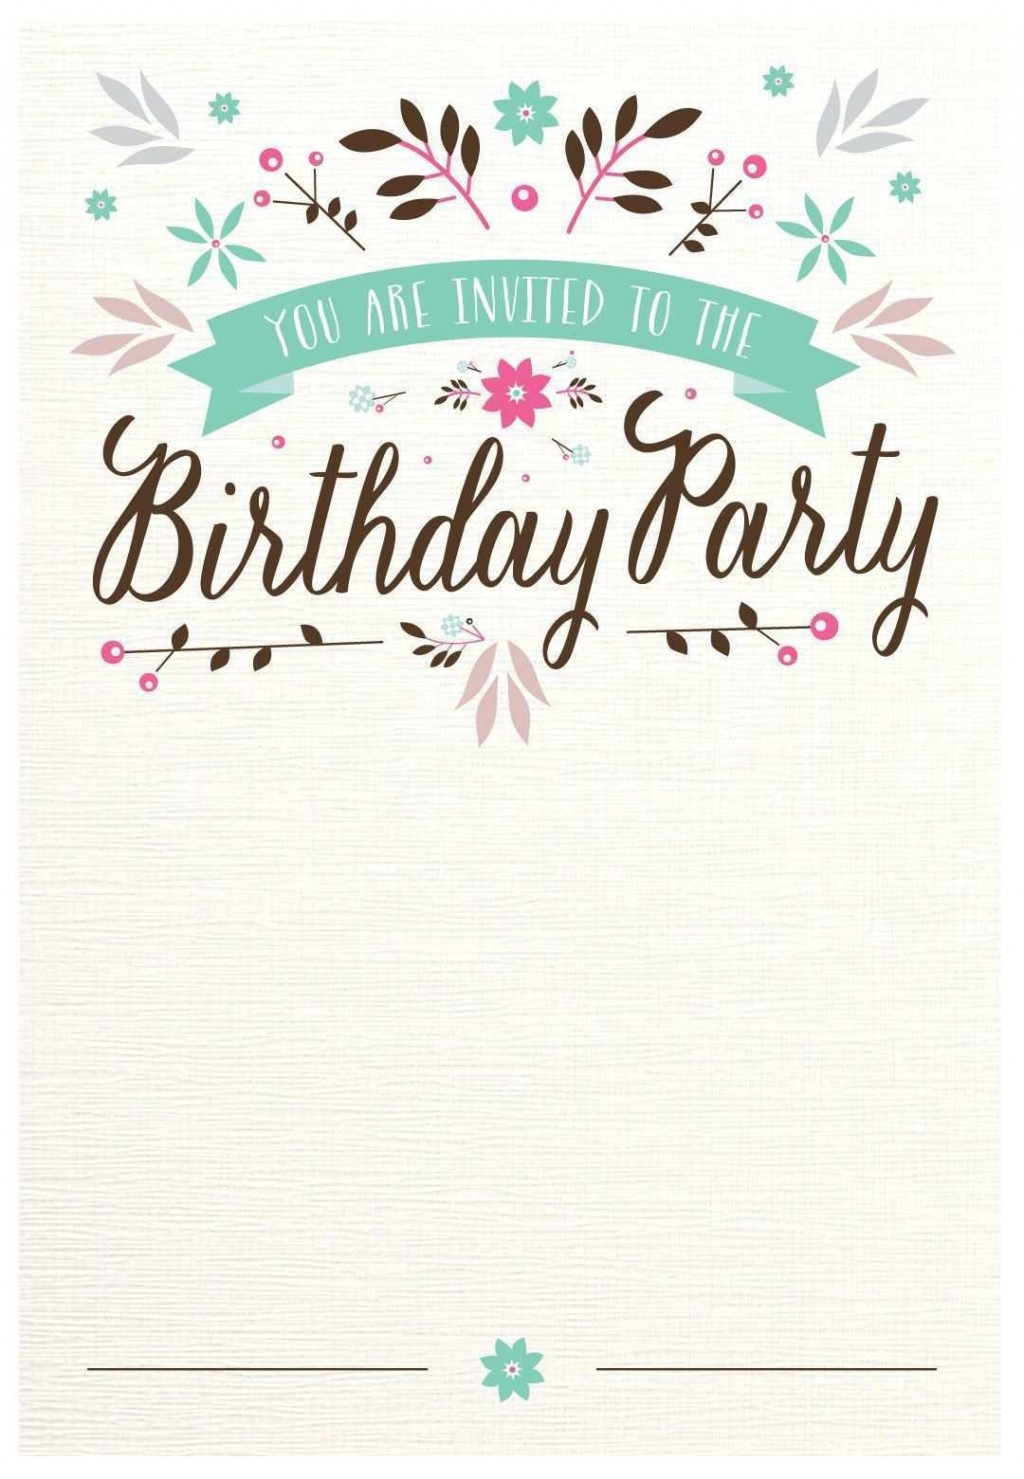 002 Remarkable Free Printable Birthday Card Template For Mac Idea Large